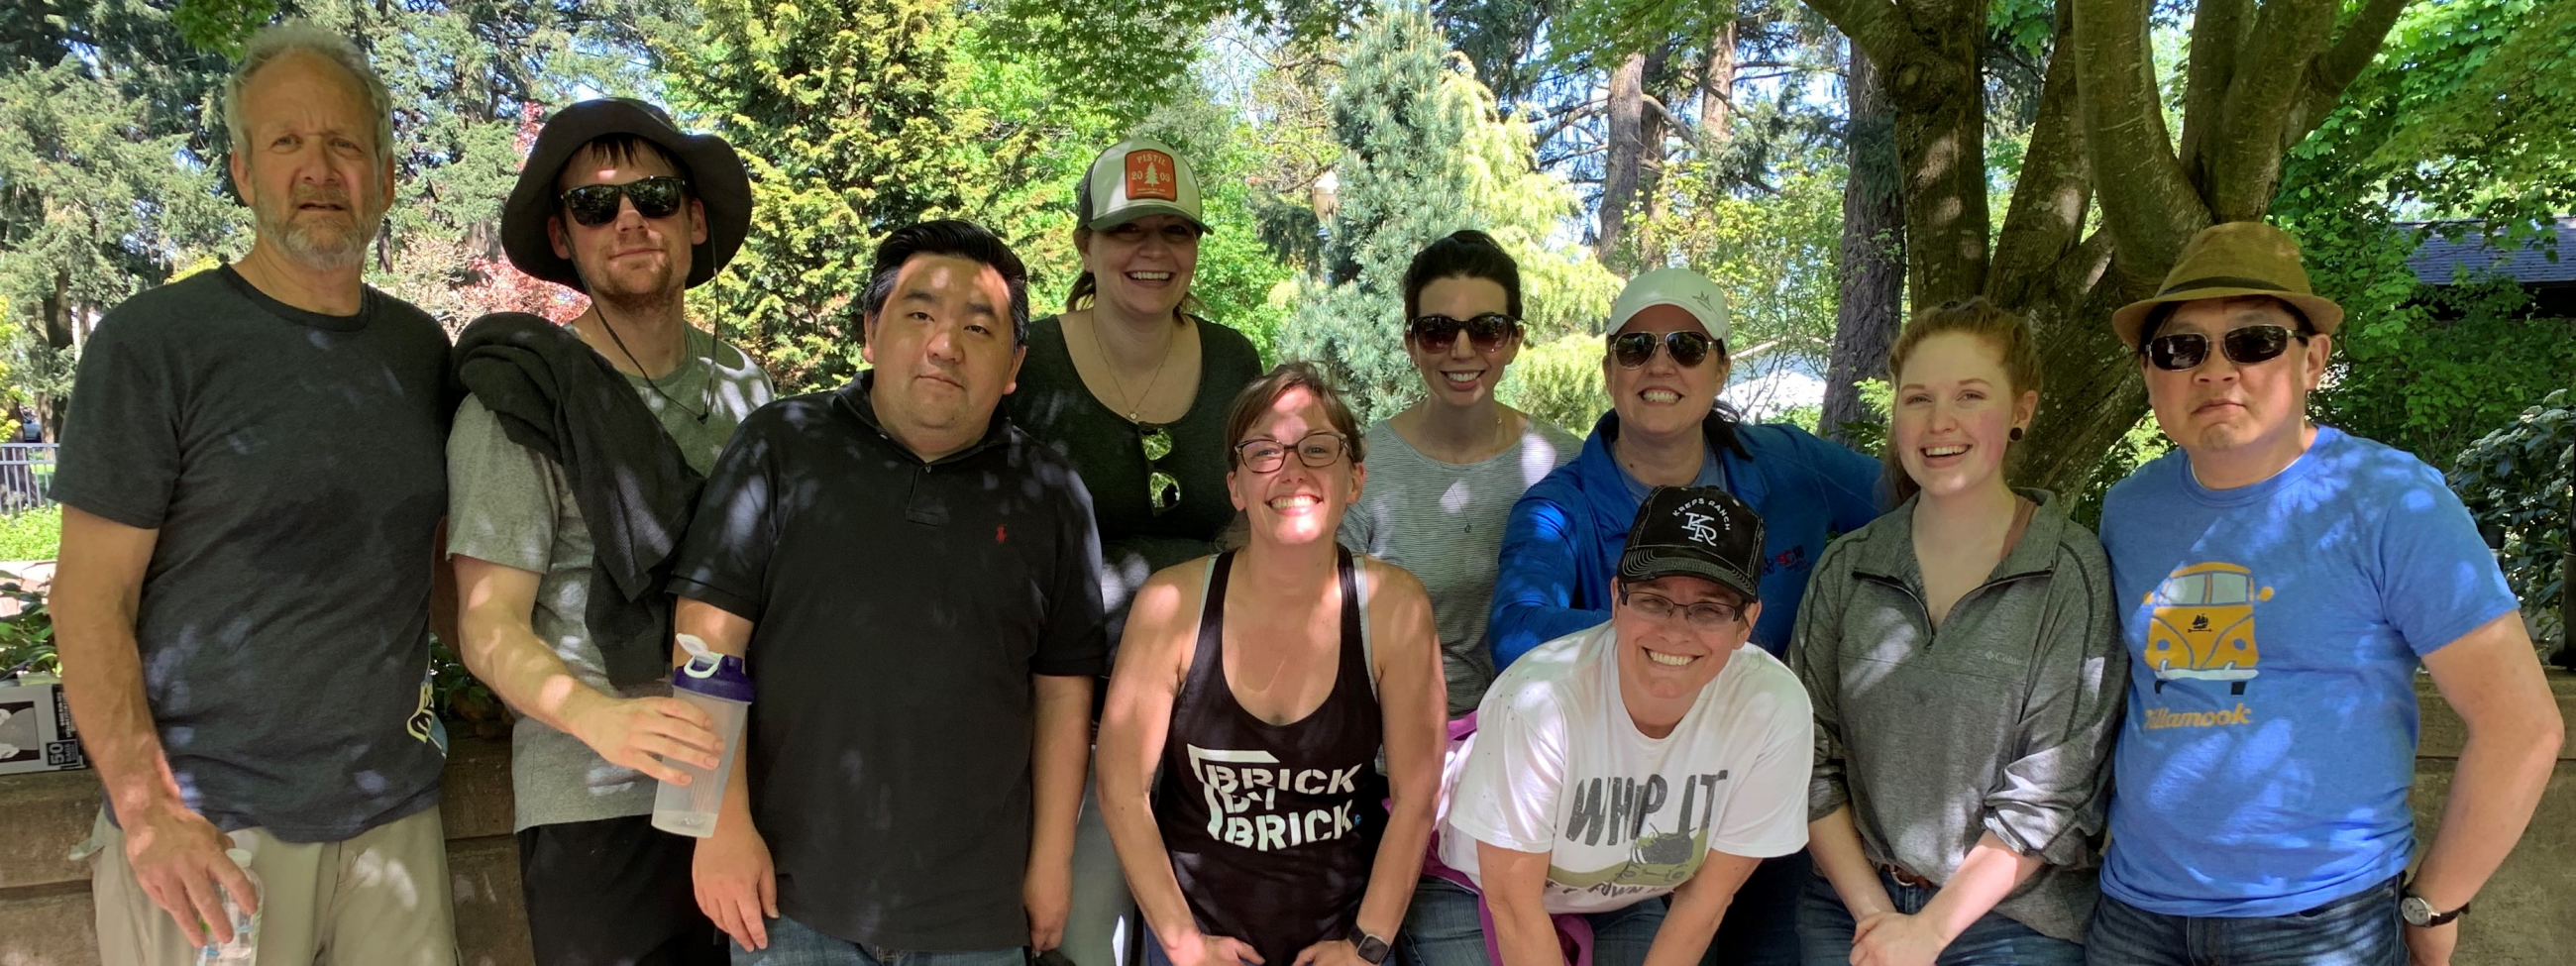 Members of our team volunteering at the Portland Memory Garden